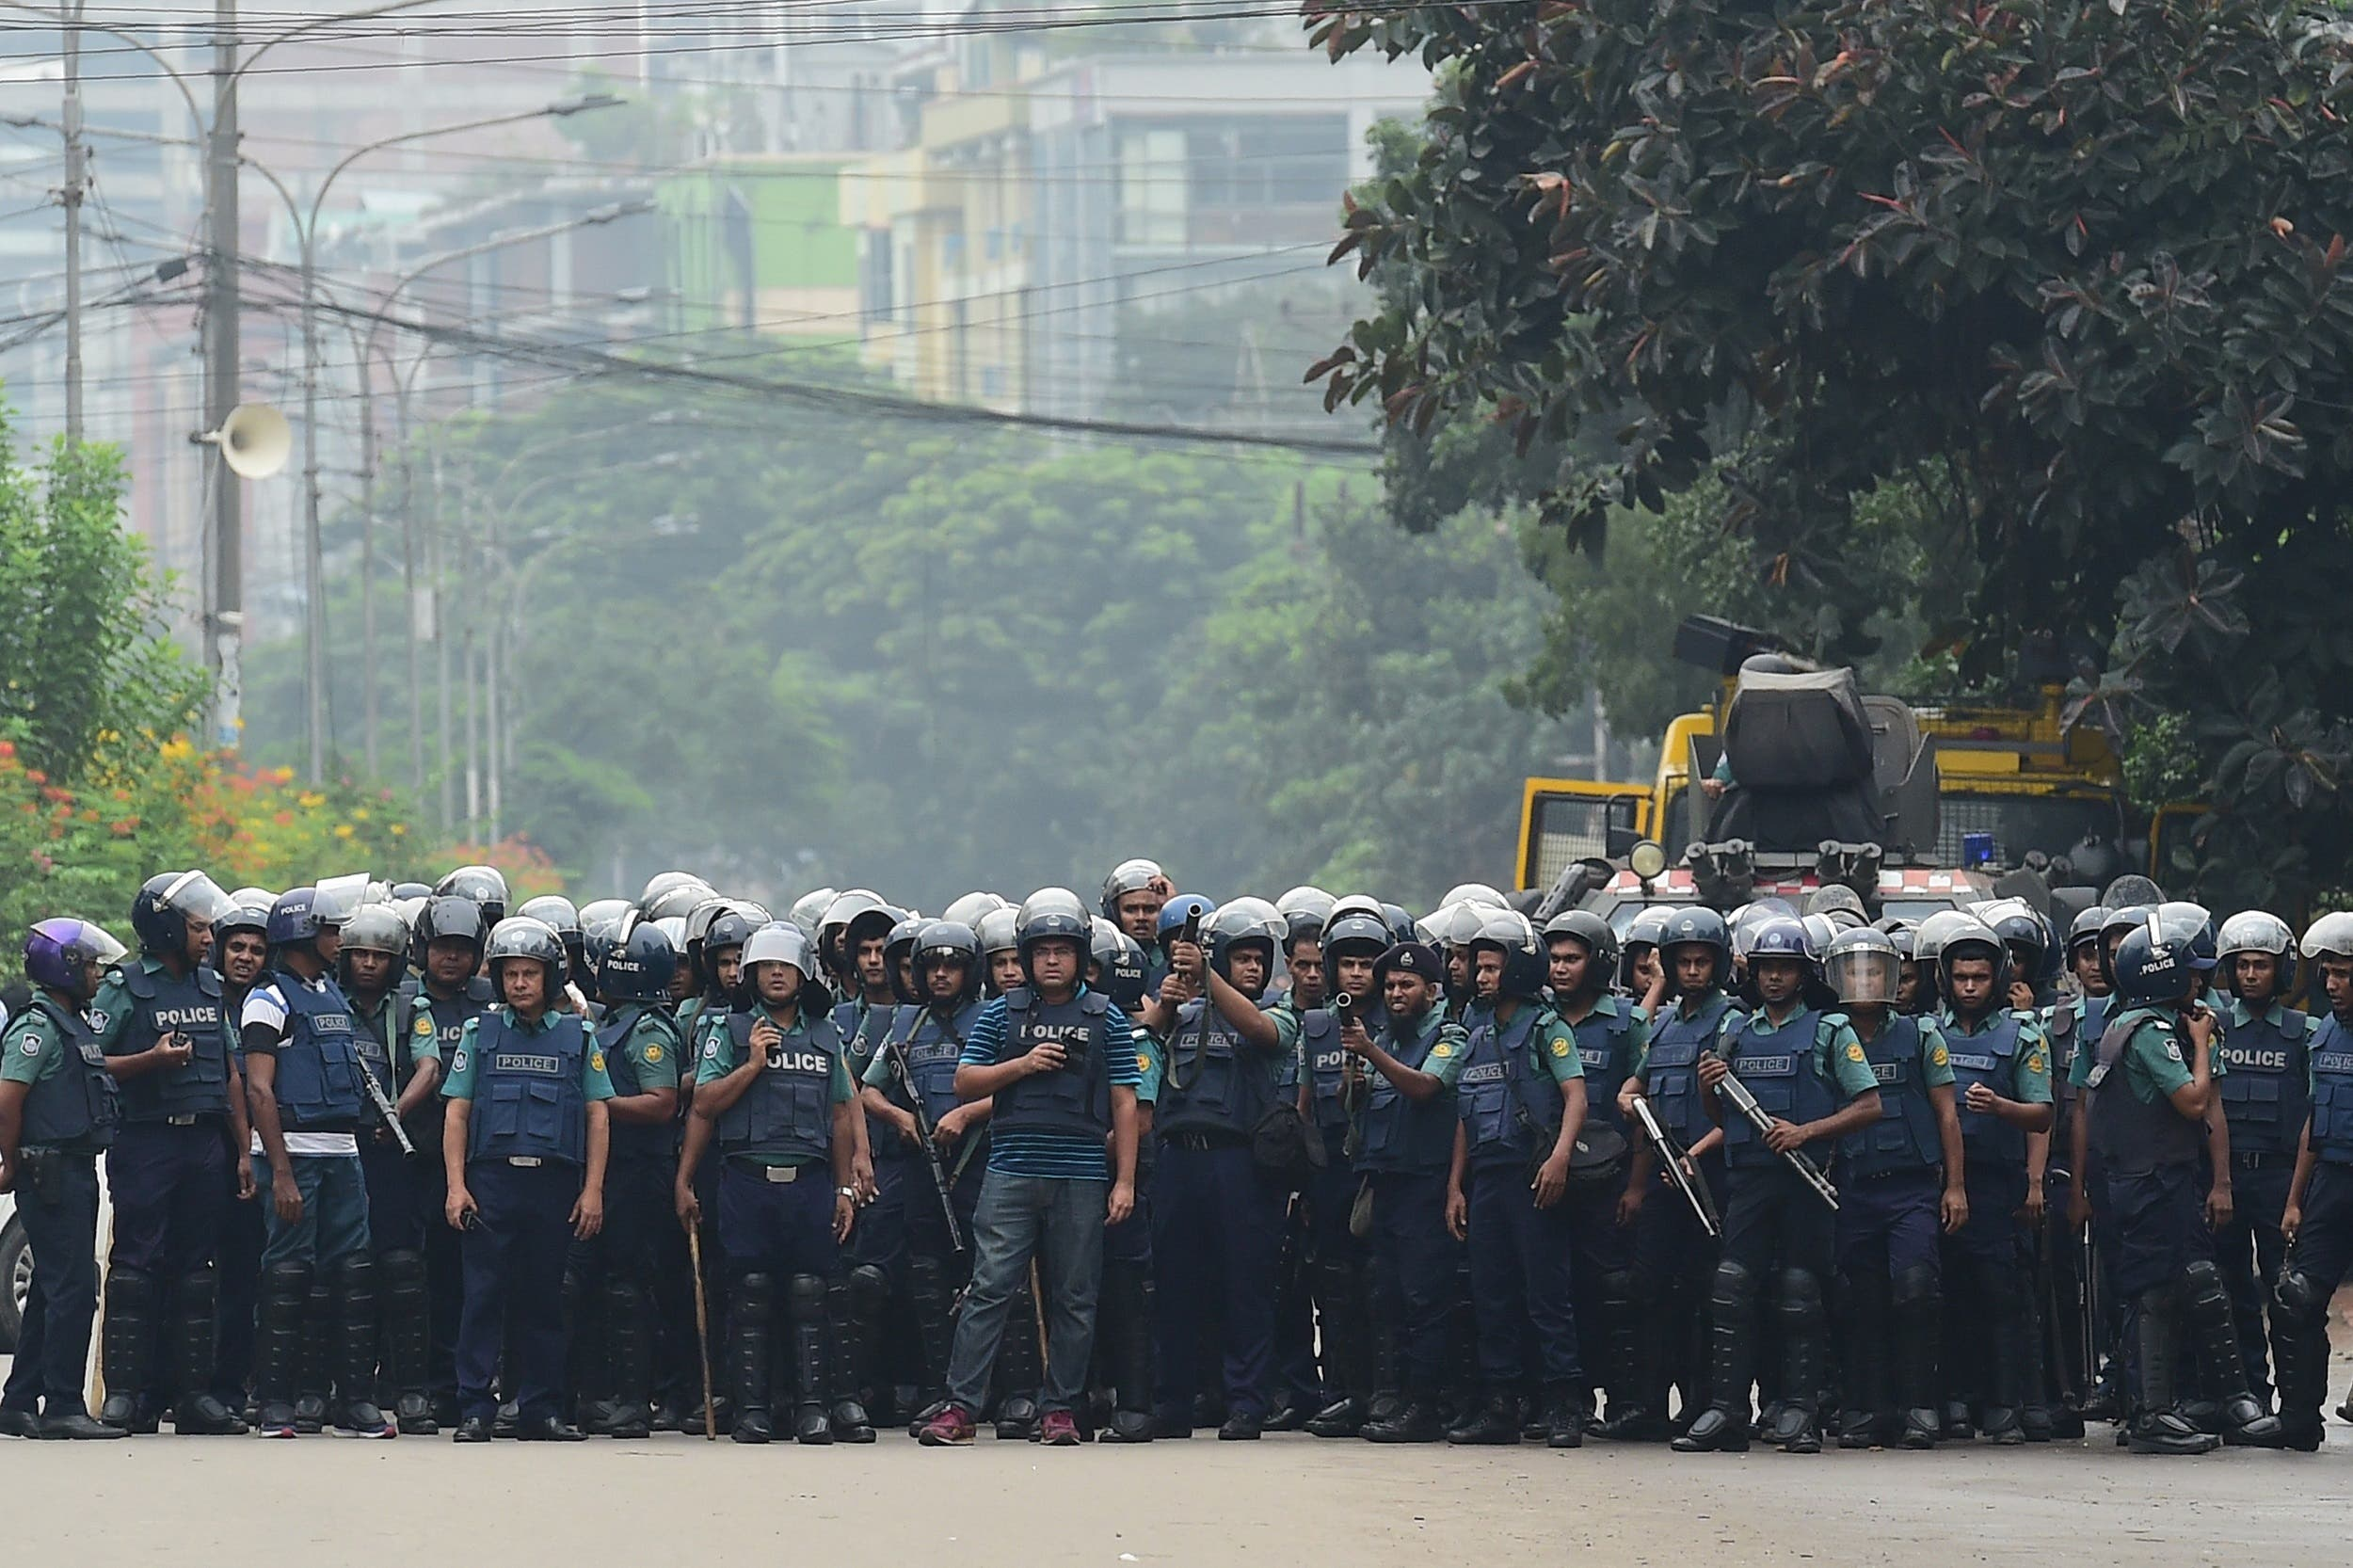 Bangladeshi police stand guard during a student protest in Dhaka on August 5, 2018. (AFP)